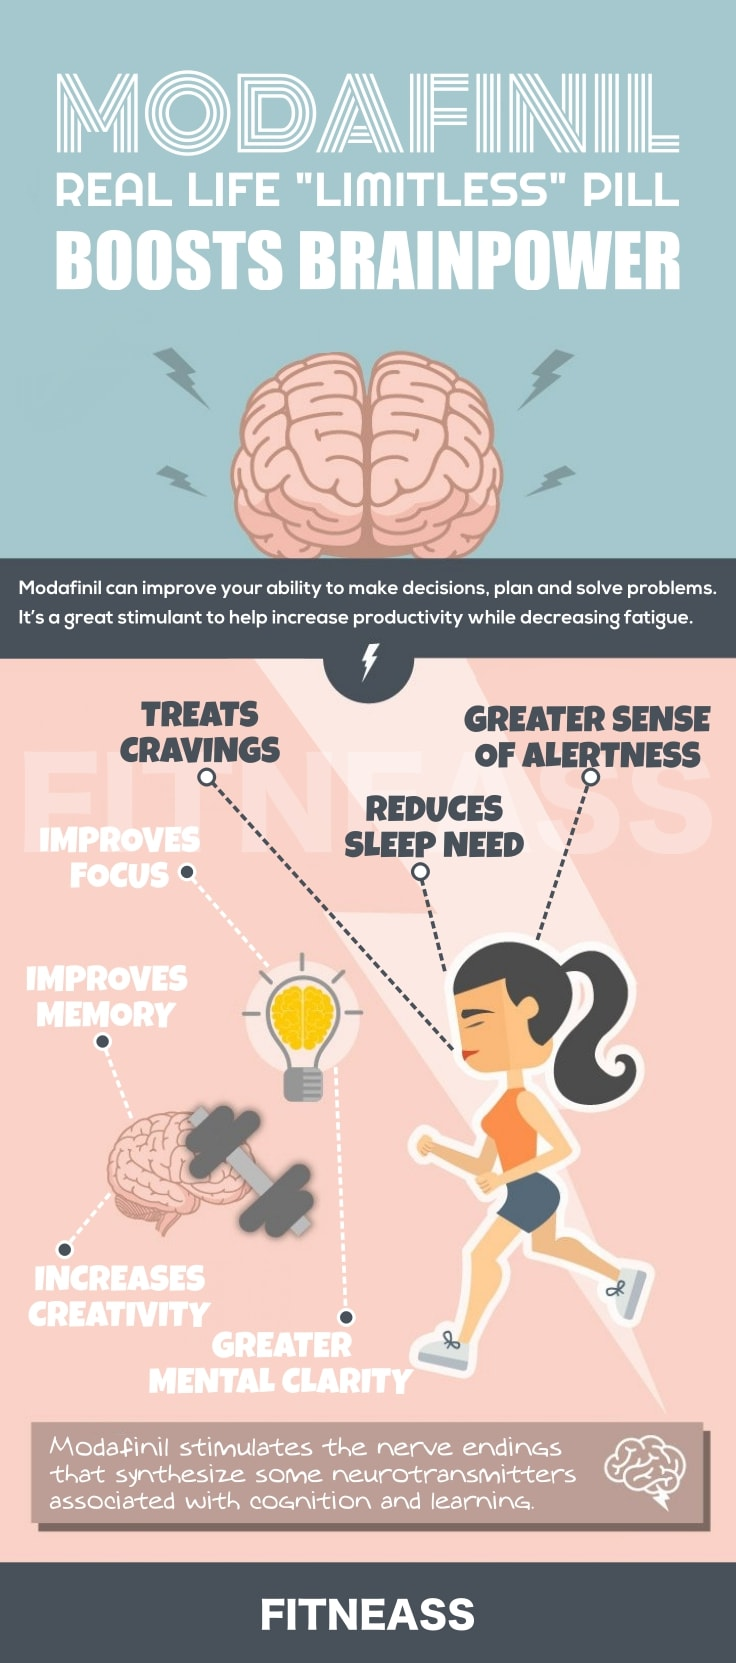 Modafinil Can Boost Brainpower Infographic